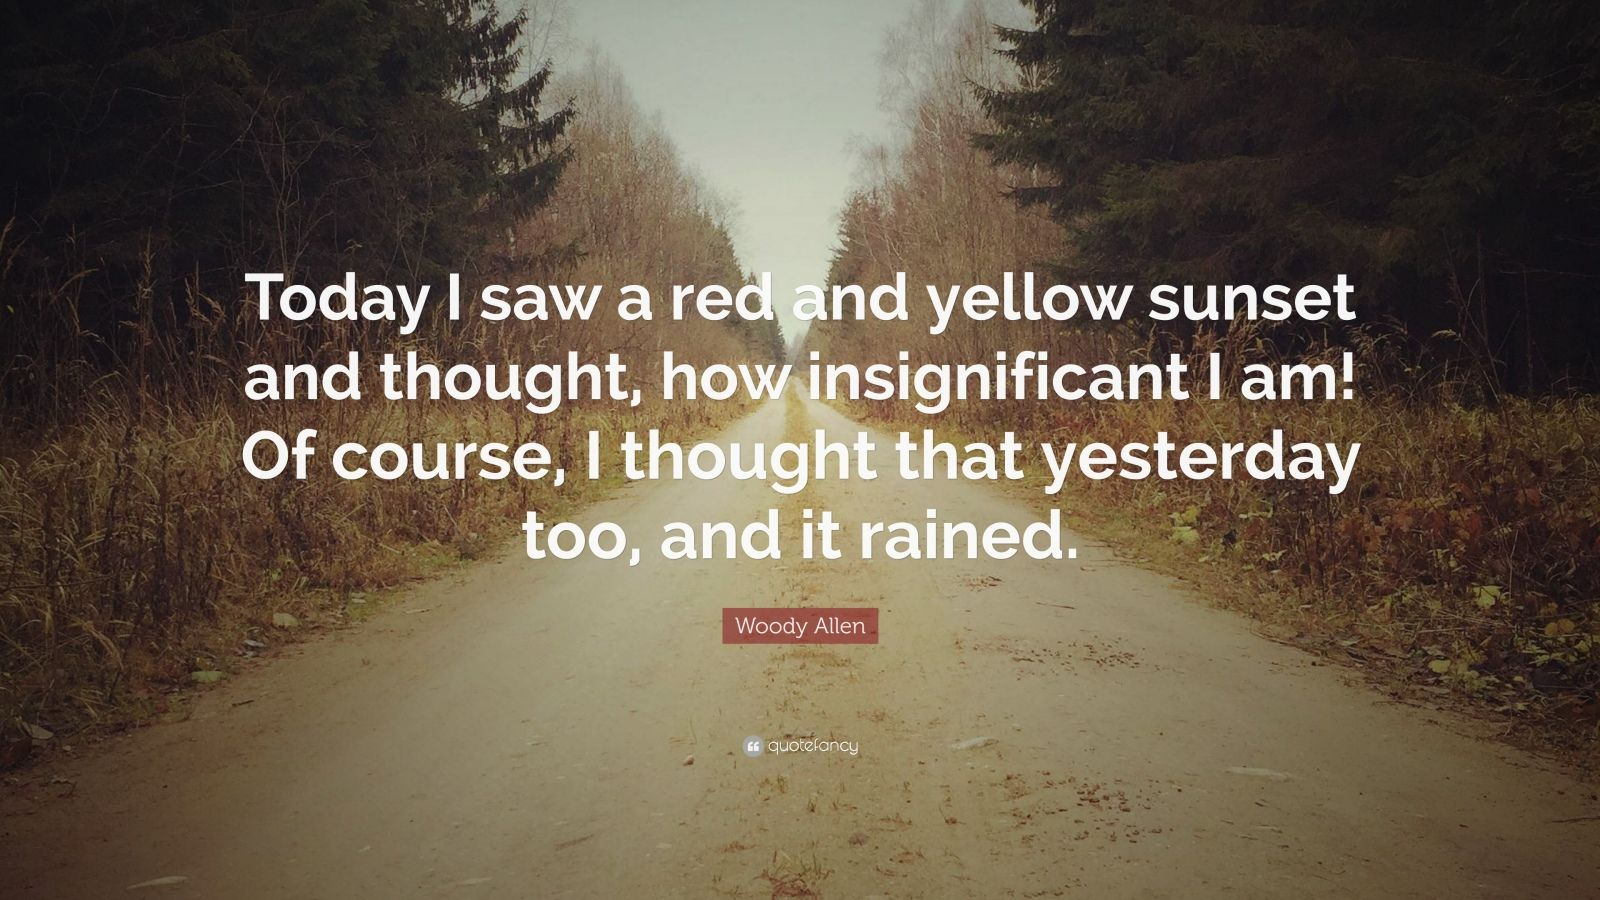 """Woody Allen Quote: """"Today I saw a red and yellow sunset and thought, how insignificant I am! Of course, I thought that yesterday too, and it rained."""""""